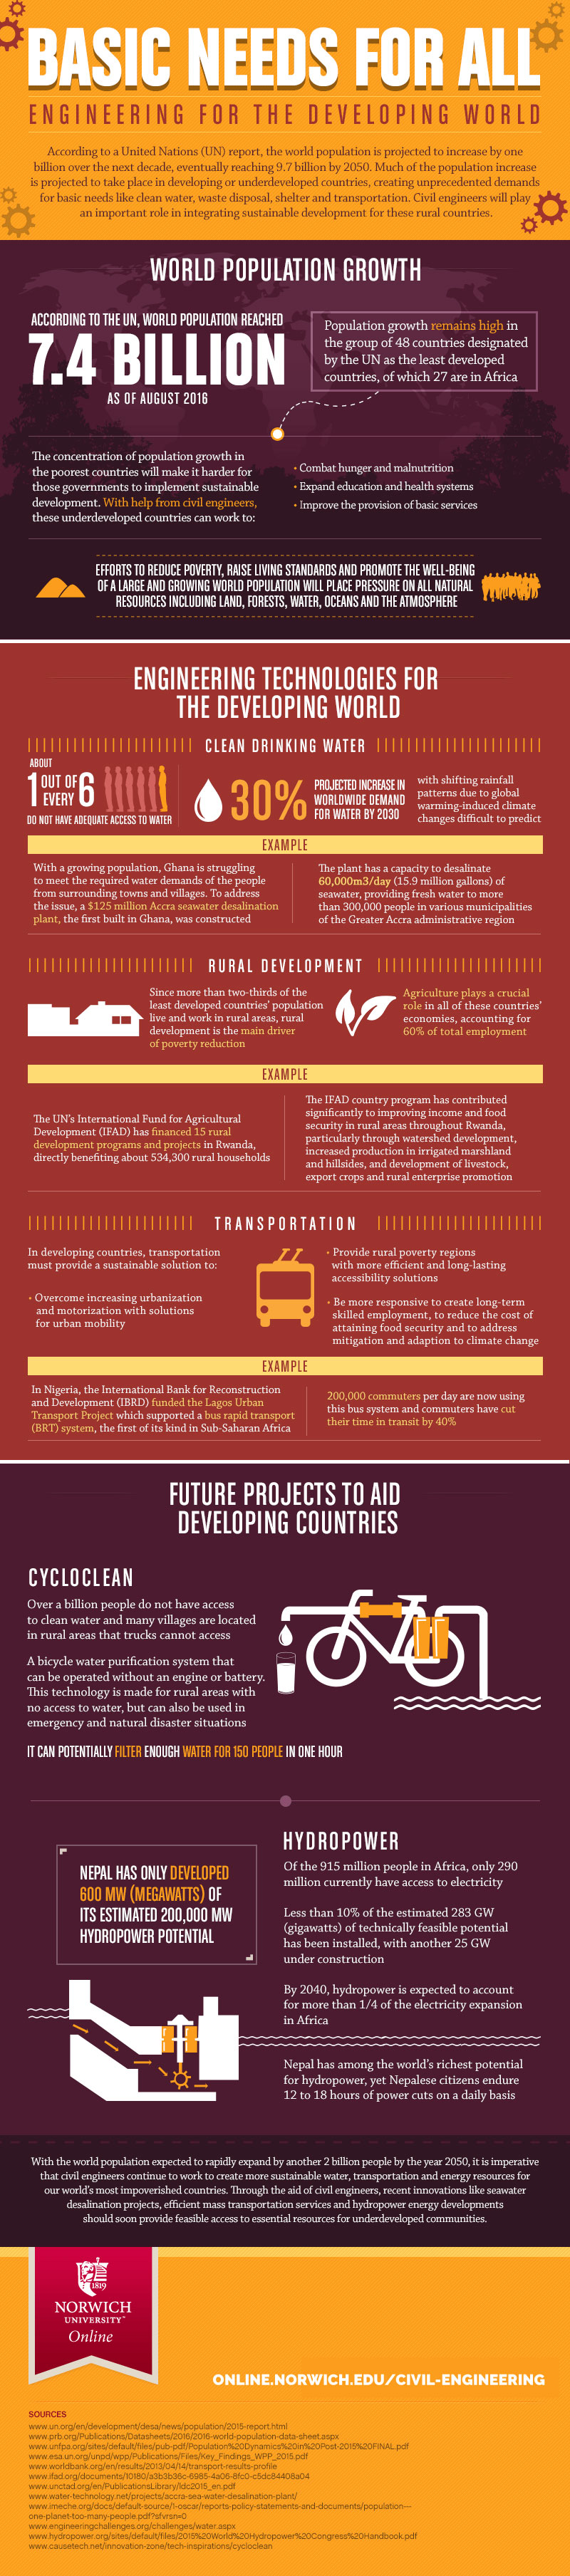 infographic on engineering for the developing world